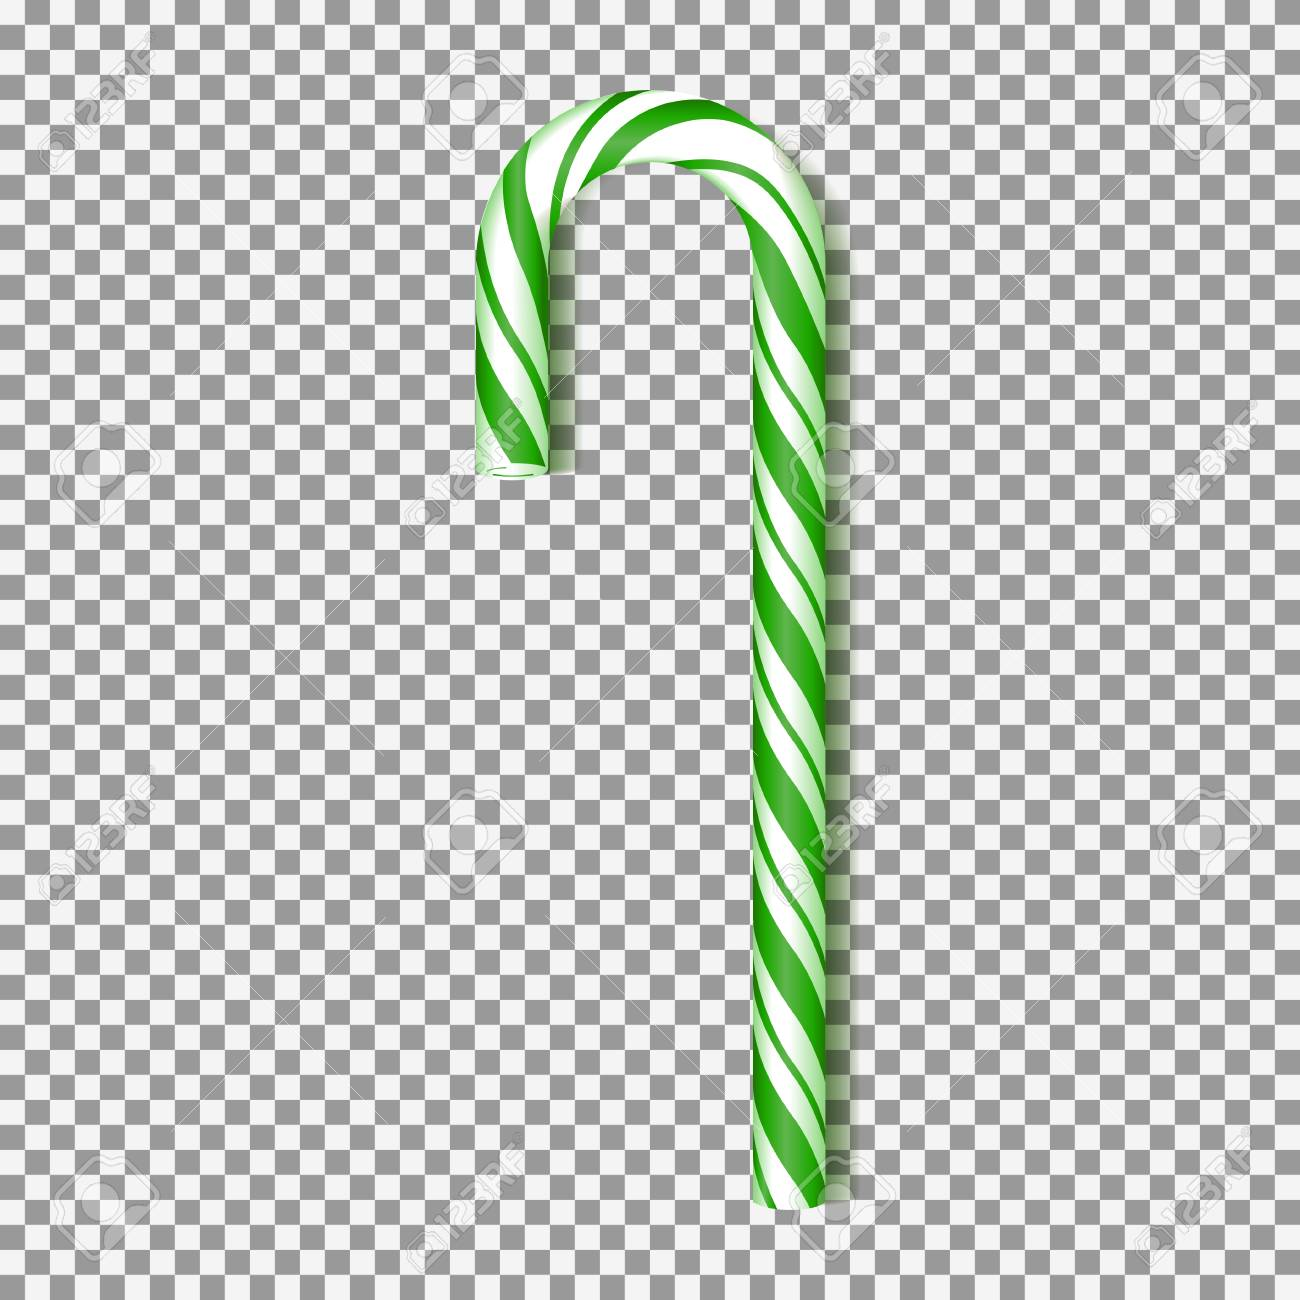 Candy Cane Template   Realistic Green Xmas Candy Cane Isolated On Transparent Backdrop